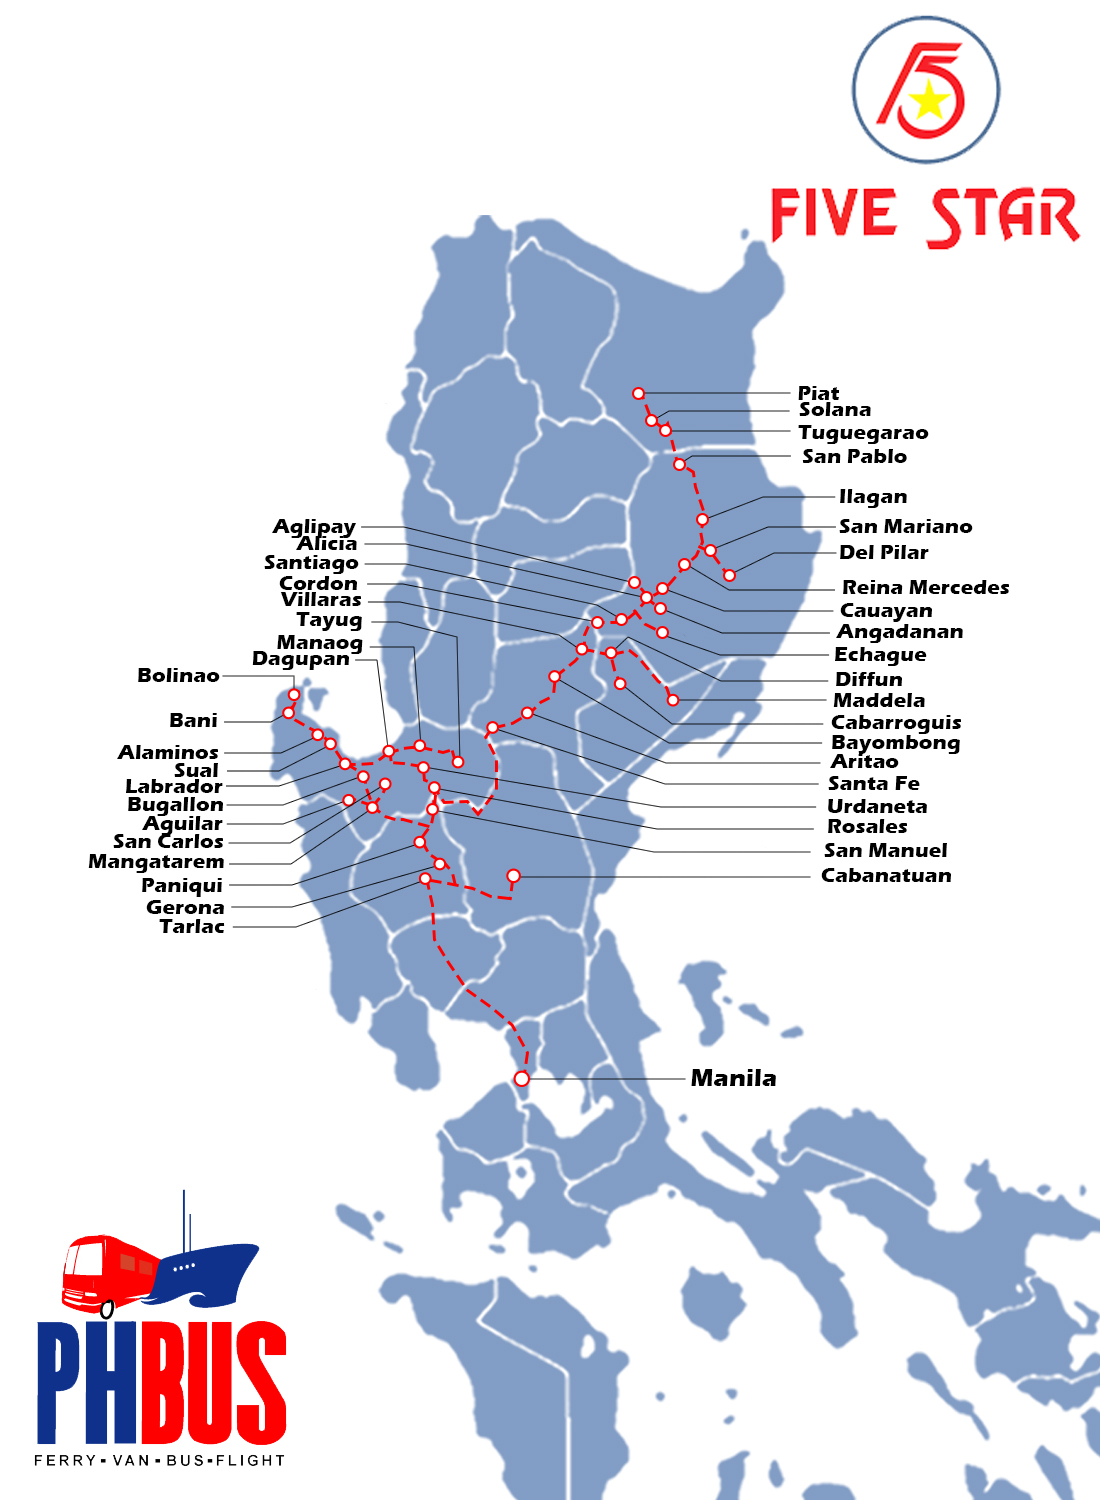 five-star-route-map-phbus.jpg